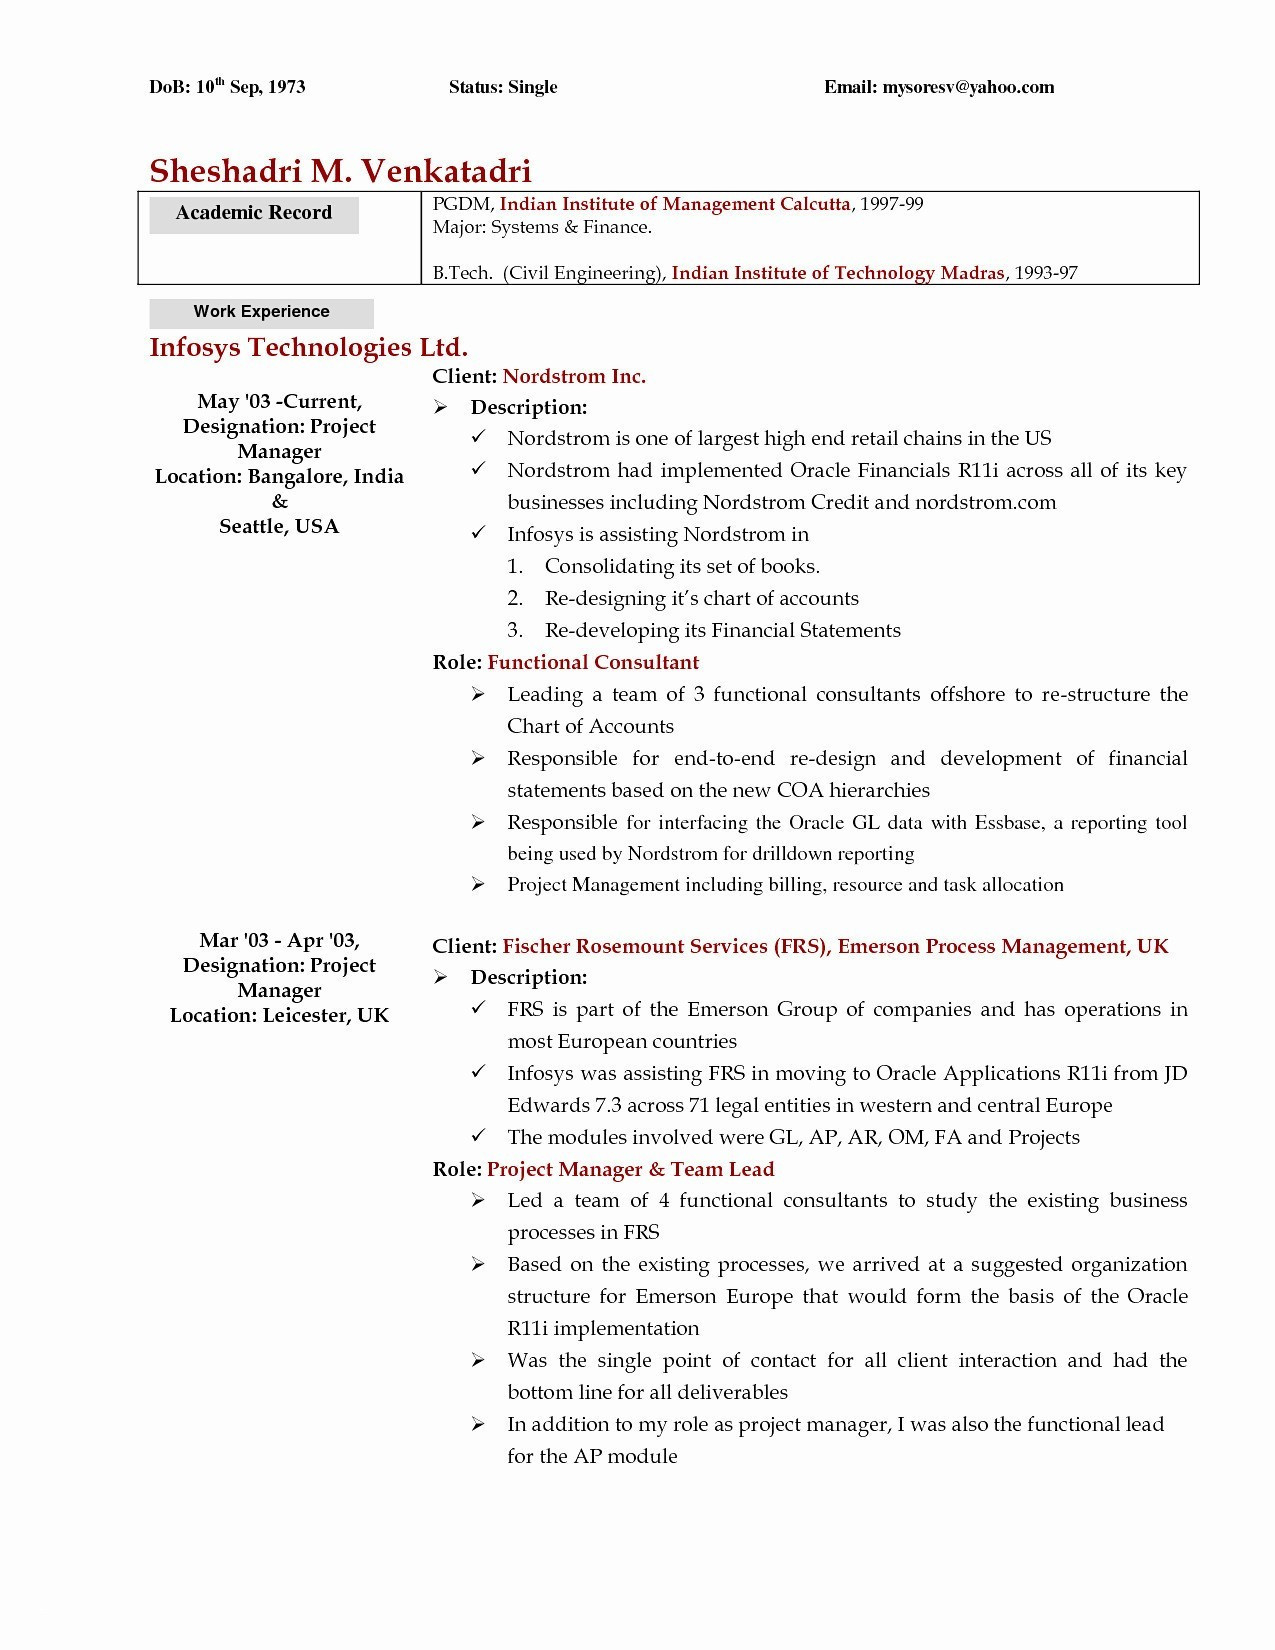 Sample Of Housekeeping Resume - Housekeeping Resume Templates Reference 19 Awesome Housekeeping